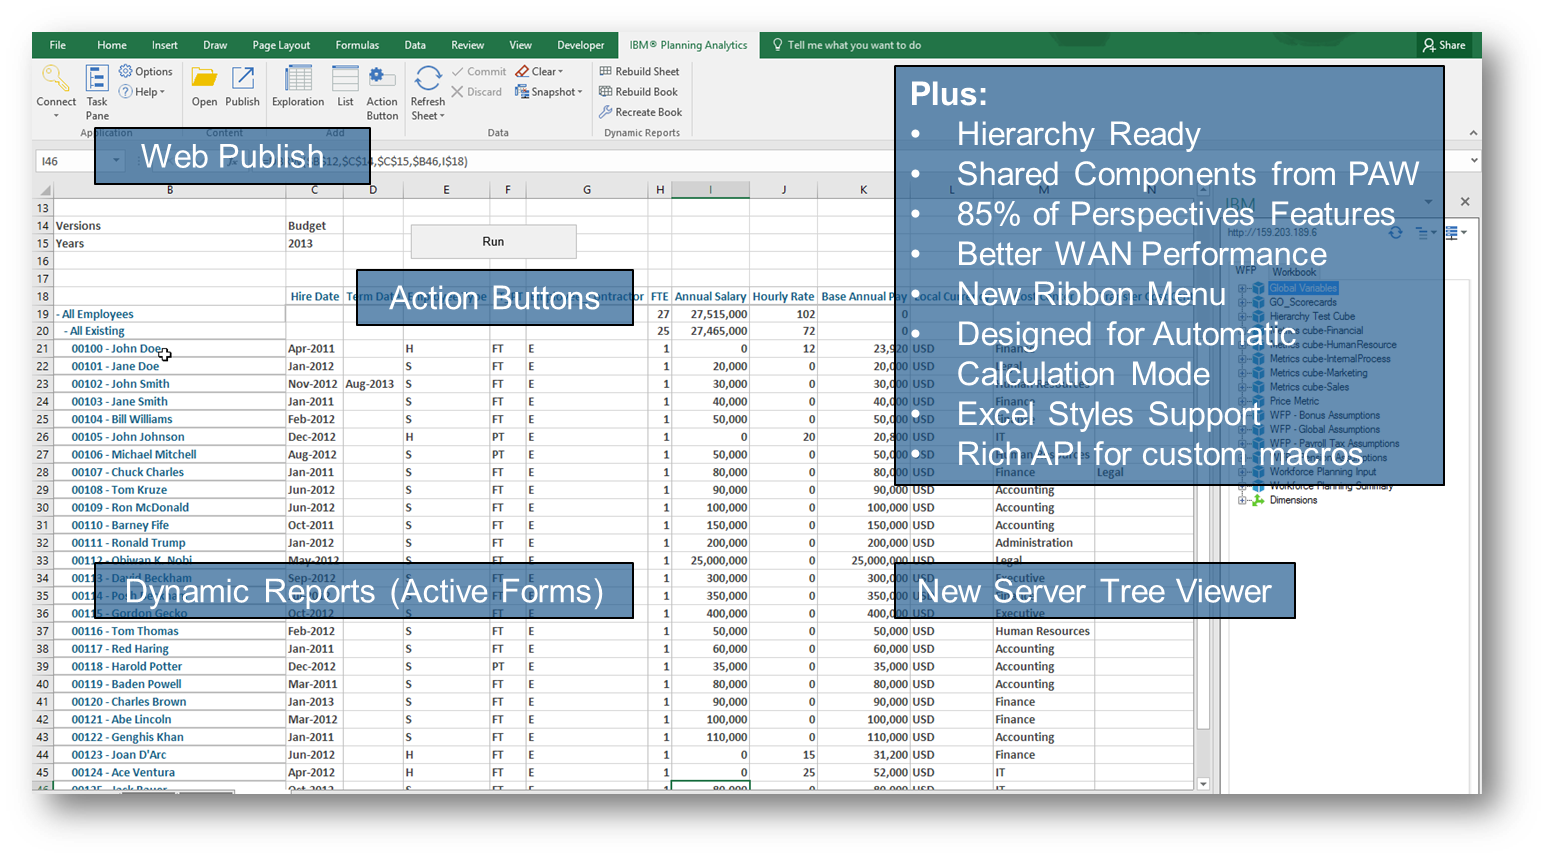 image of planning analytics for excel